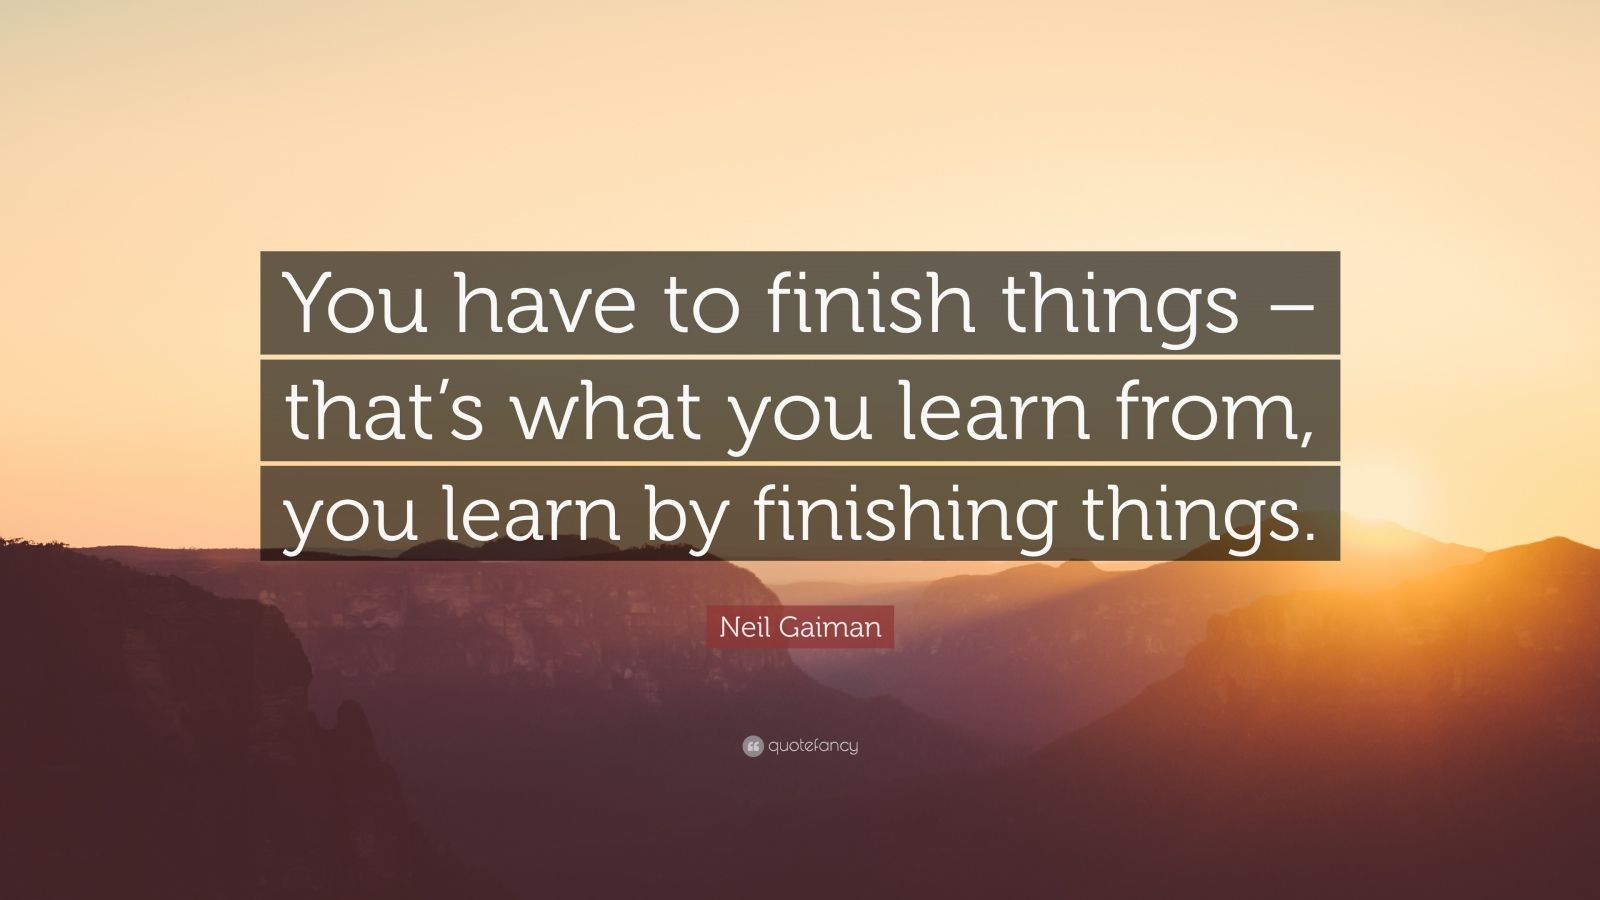 """Neil Gaiman Quote: """"You have to finish things – that's what you learn from, you learn by finishing things."""""""